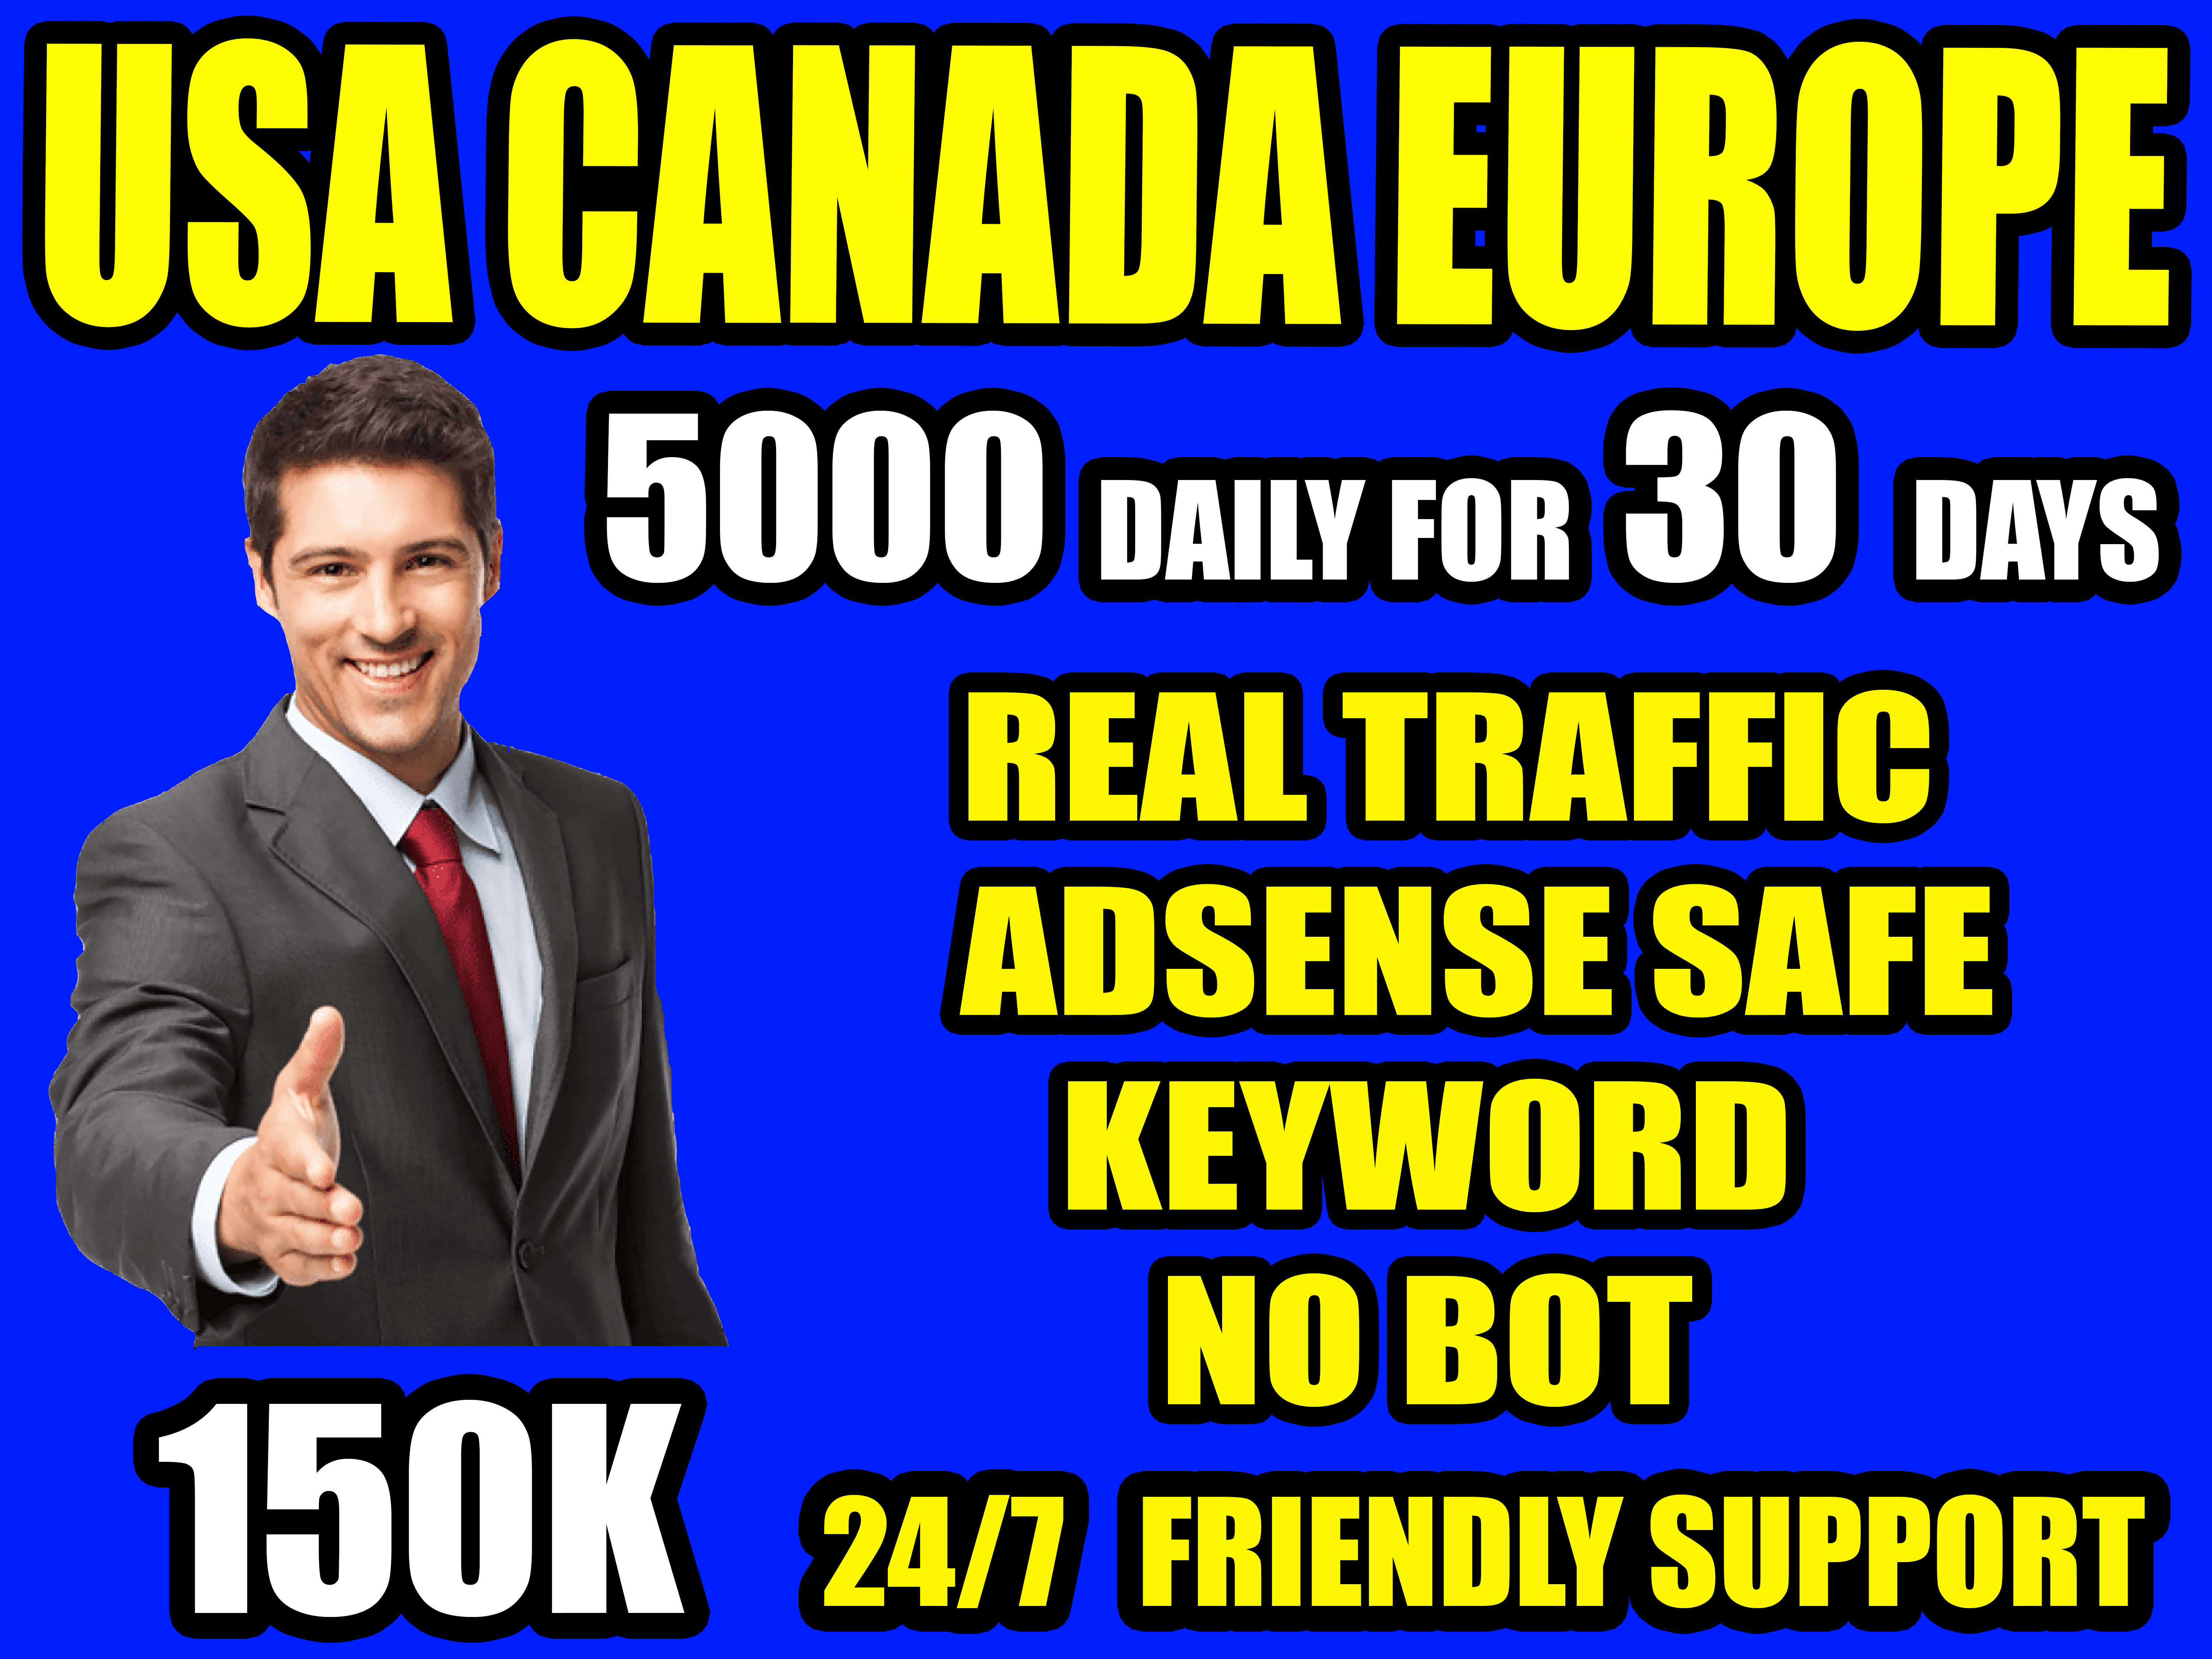 I will drive real targeted traffic,  quality visitors,  for 30 days